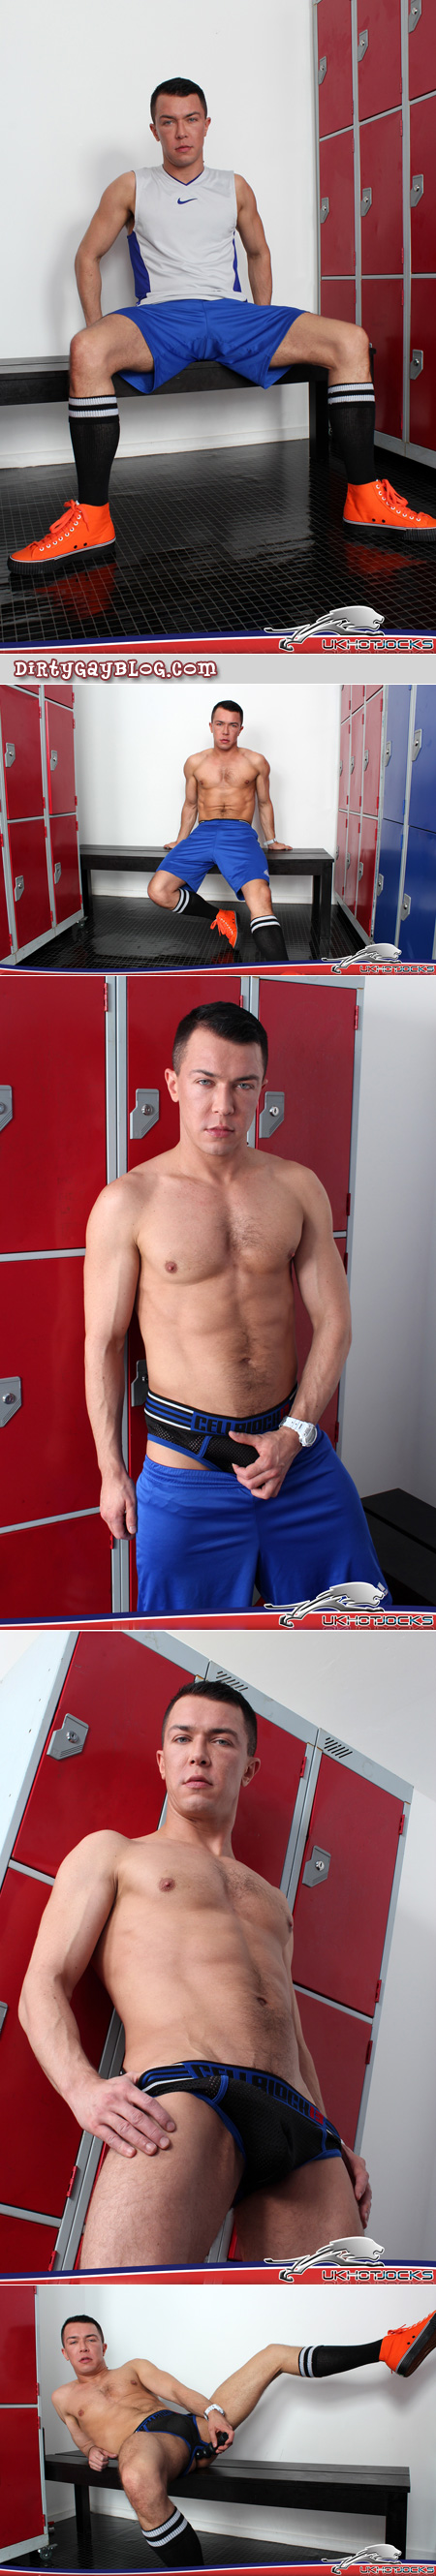 Compact muscle man stripping to his jockstrap in the locker room.